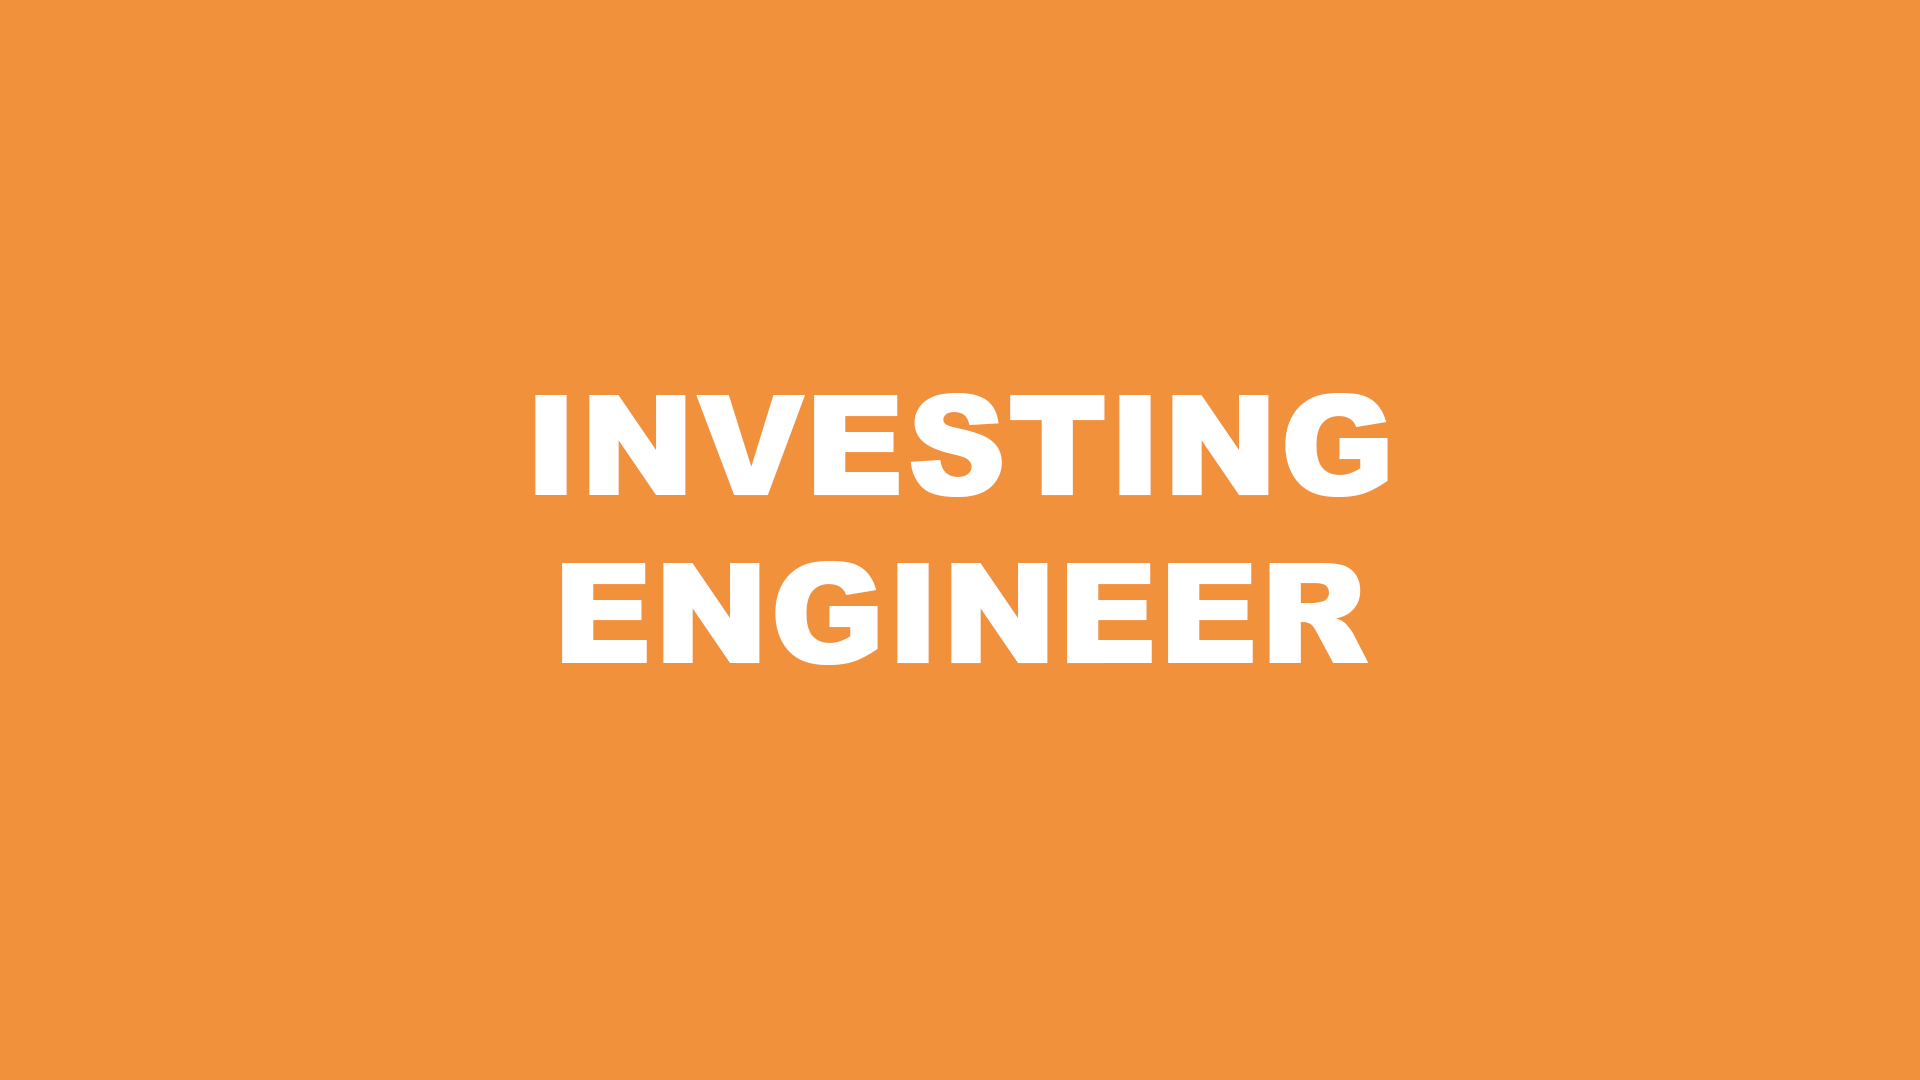 investing engineer ph